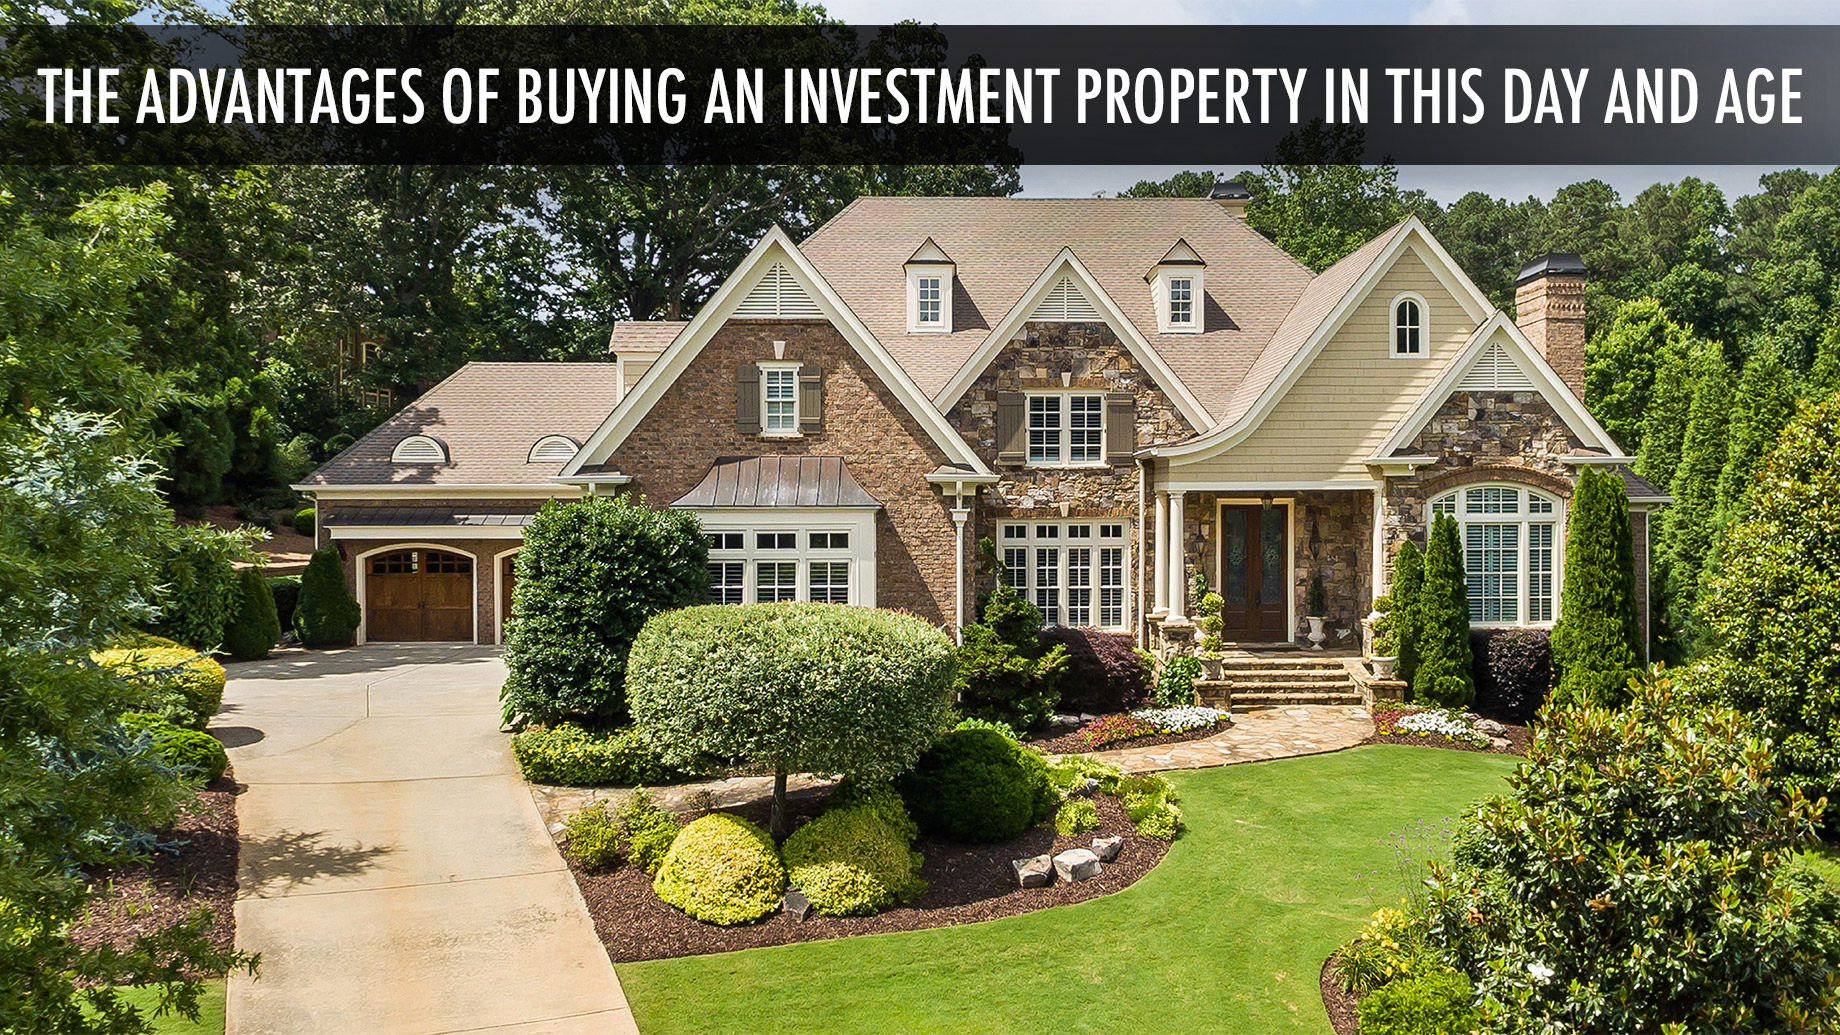 The Advantages of Buying an Investment Property in This Day and Age